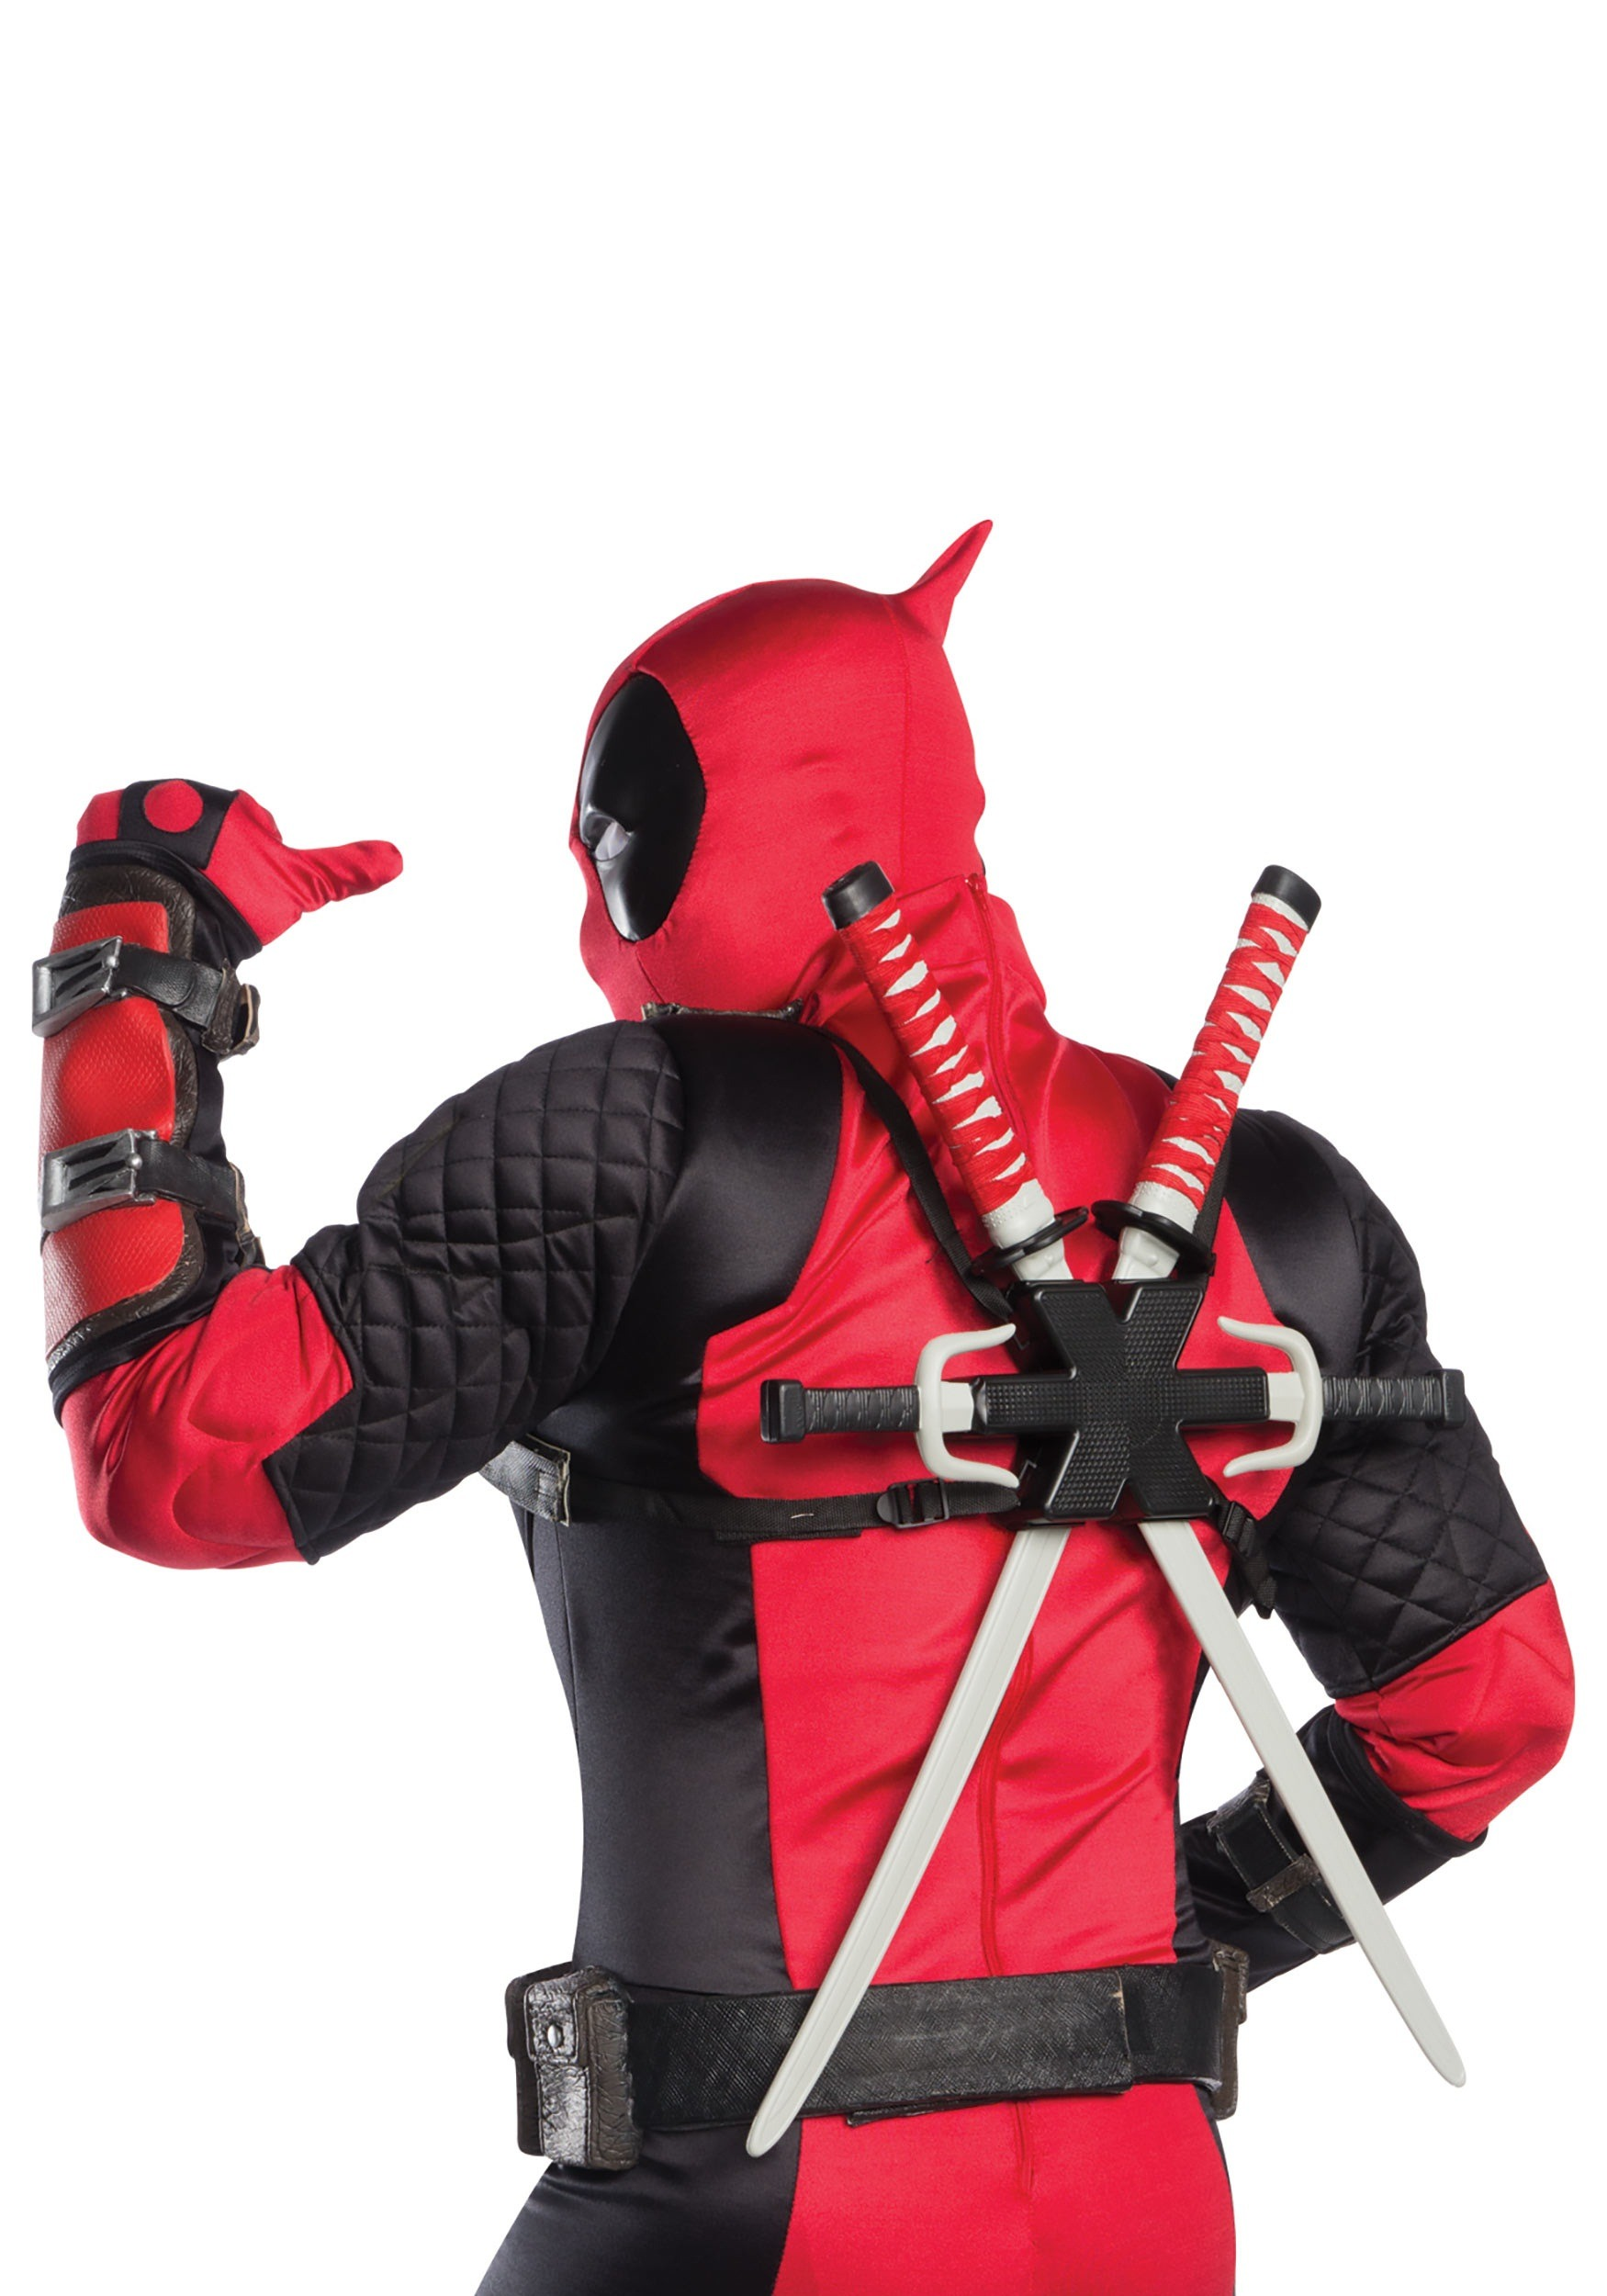 Authentic deadpool costume for adults adult grand heritage deadpool costume adult grand heritage deadpool costume solutioingenieria Choice Image